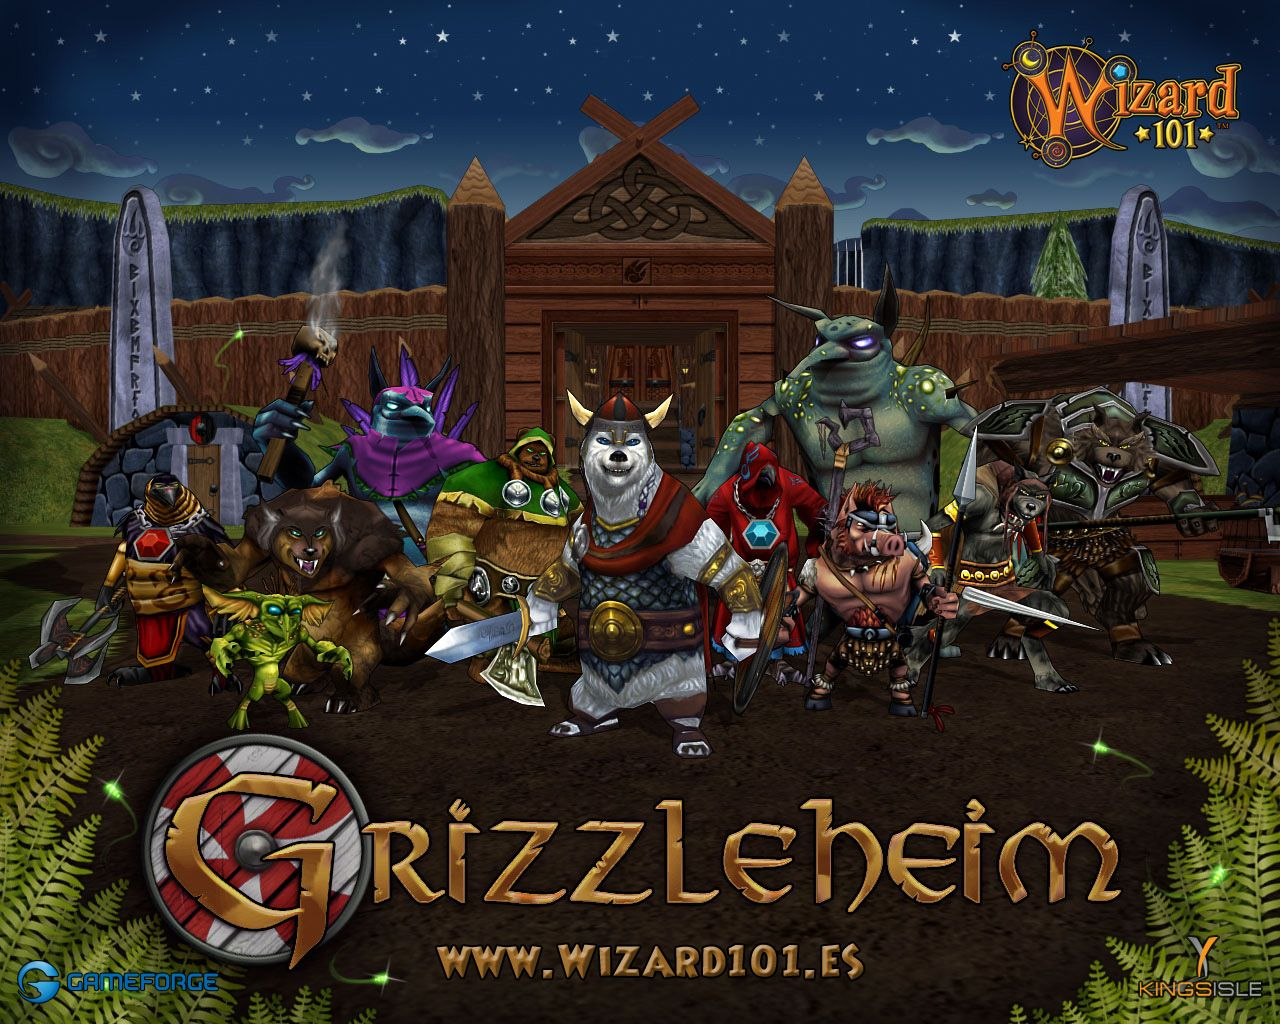 Wizard101 - Grizzleheim Brings alive the Norse/Teutonic Myths, right